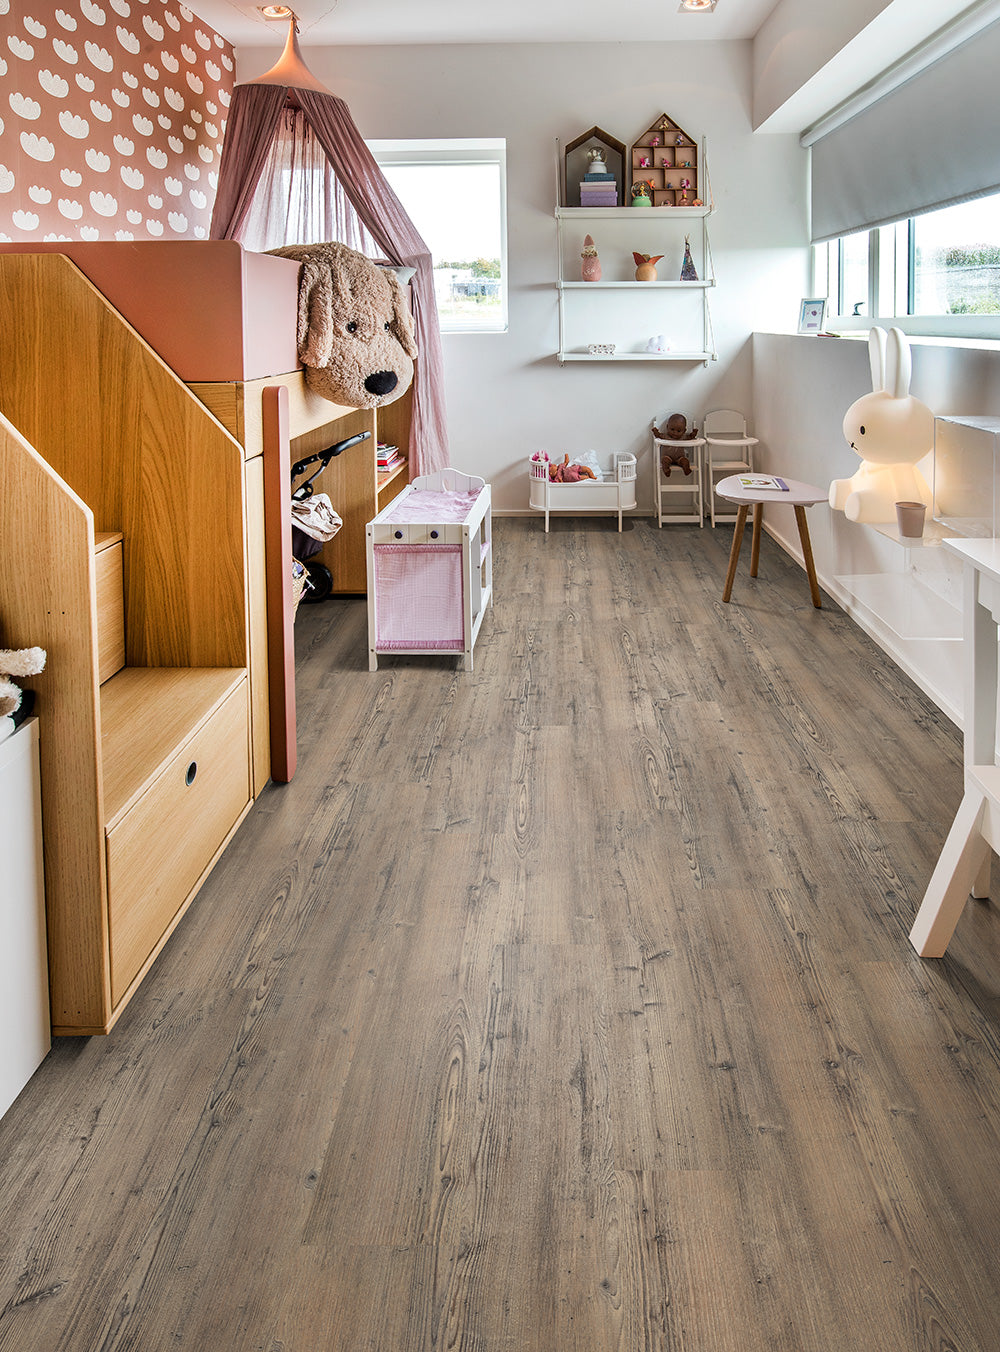 Kahrs Lacandon Click LTCLW2112-218 6mm Flooring is Ideal For Children's Bedrooms